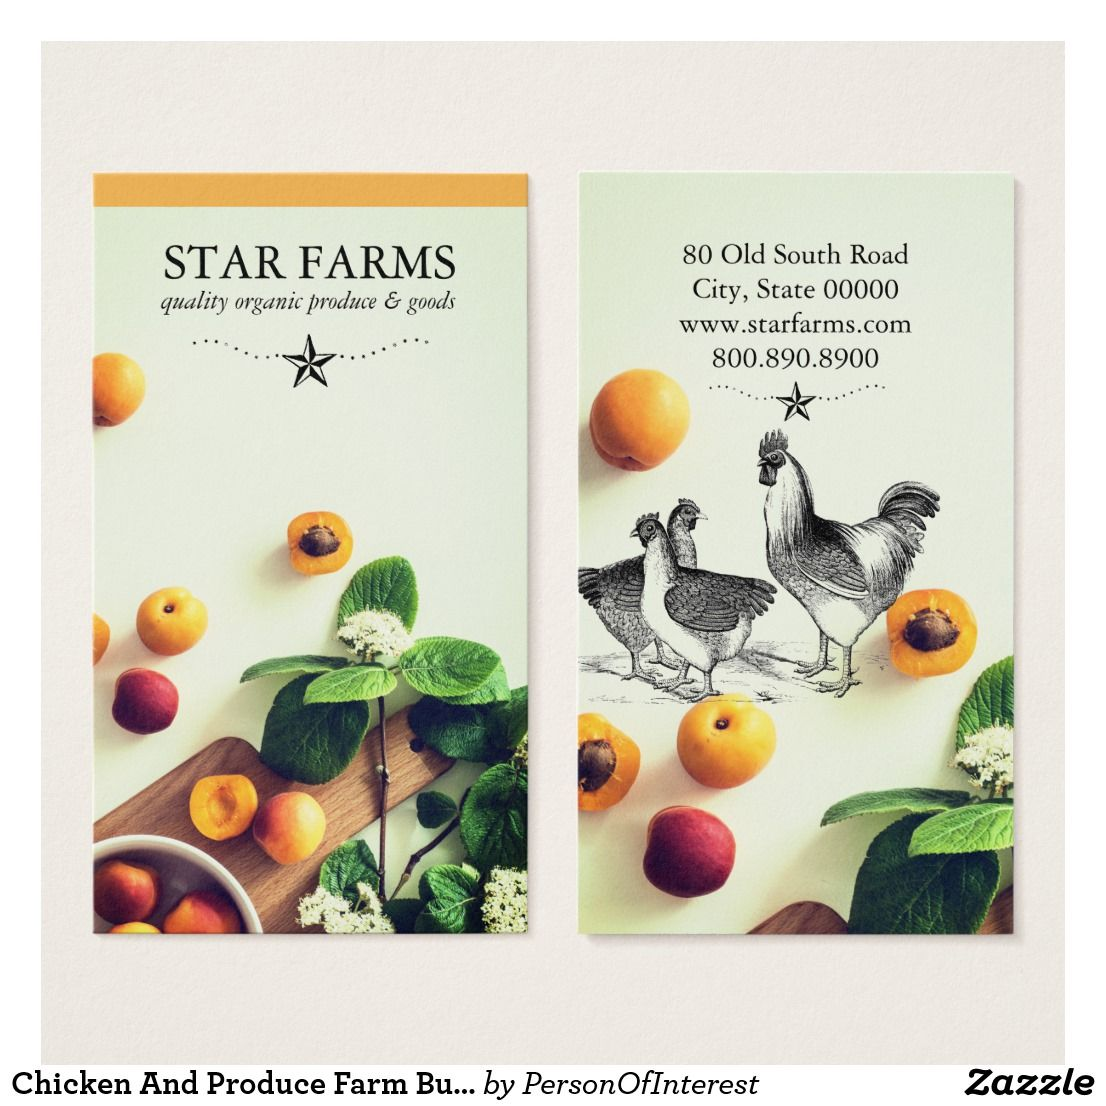 Chicken And Produce Farm Business Cards Zazzle Com In 2021 Farm Business Food Business Card Business Cards